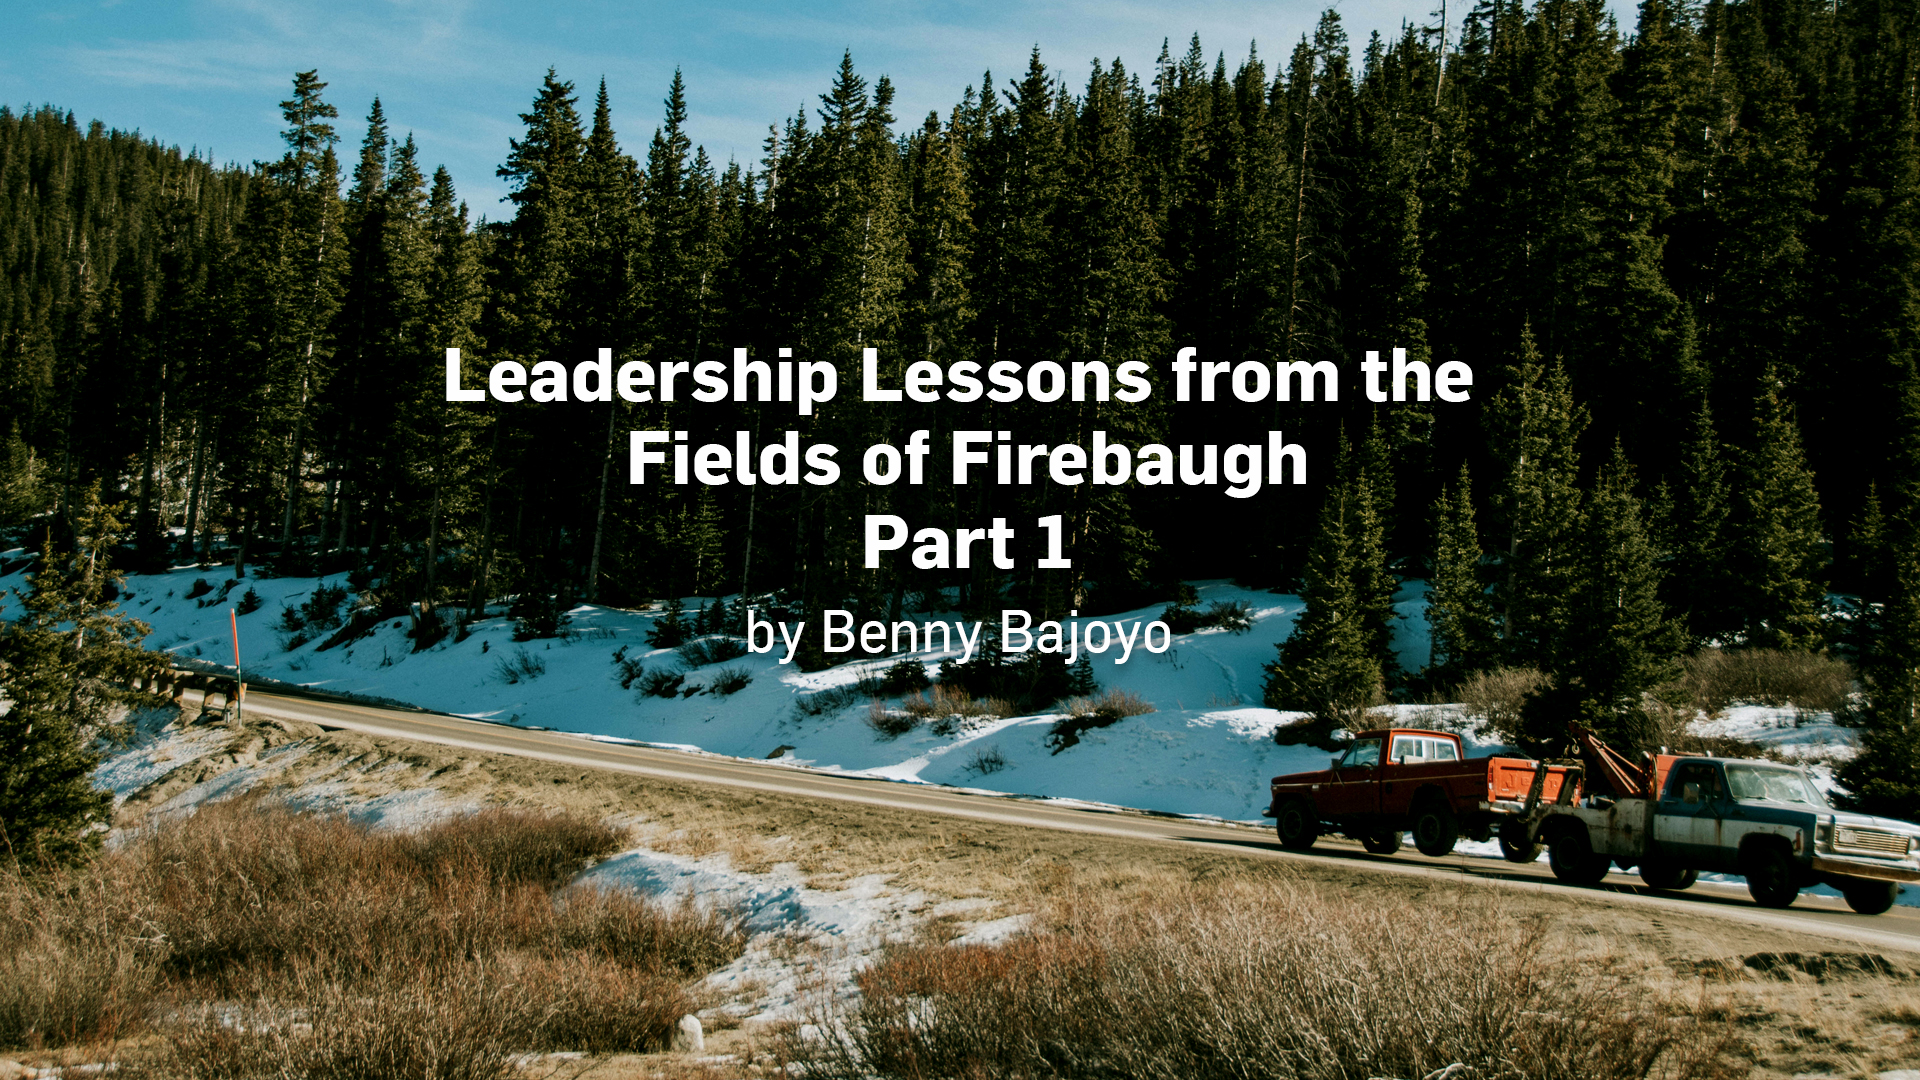 Leadership Lessons from the Fields of Firebaugh 1920x1080.jpg